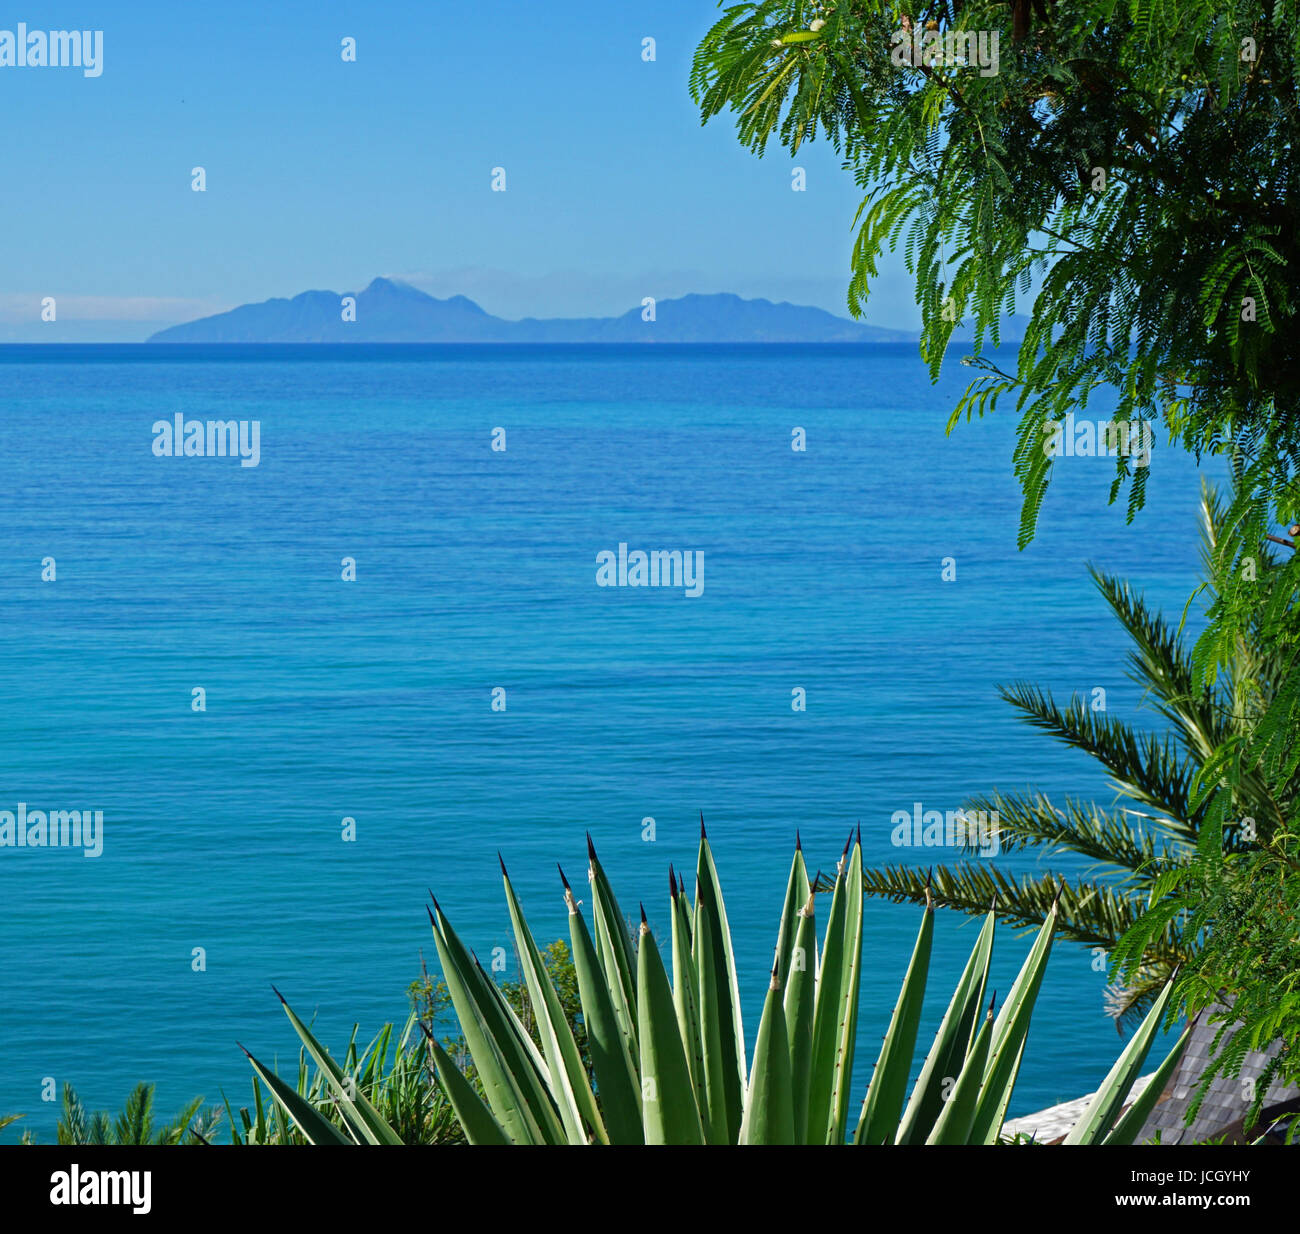 Montserrat from Reeds Point, Jolly Harbour - Stock Image